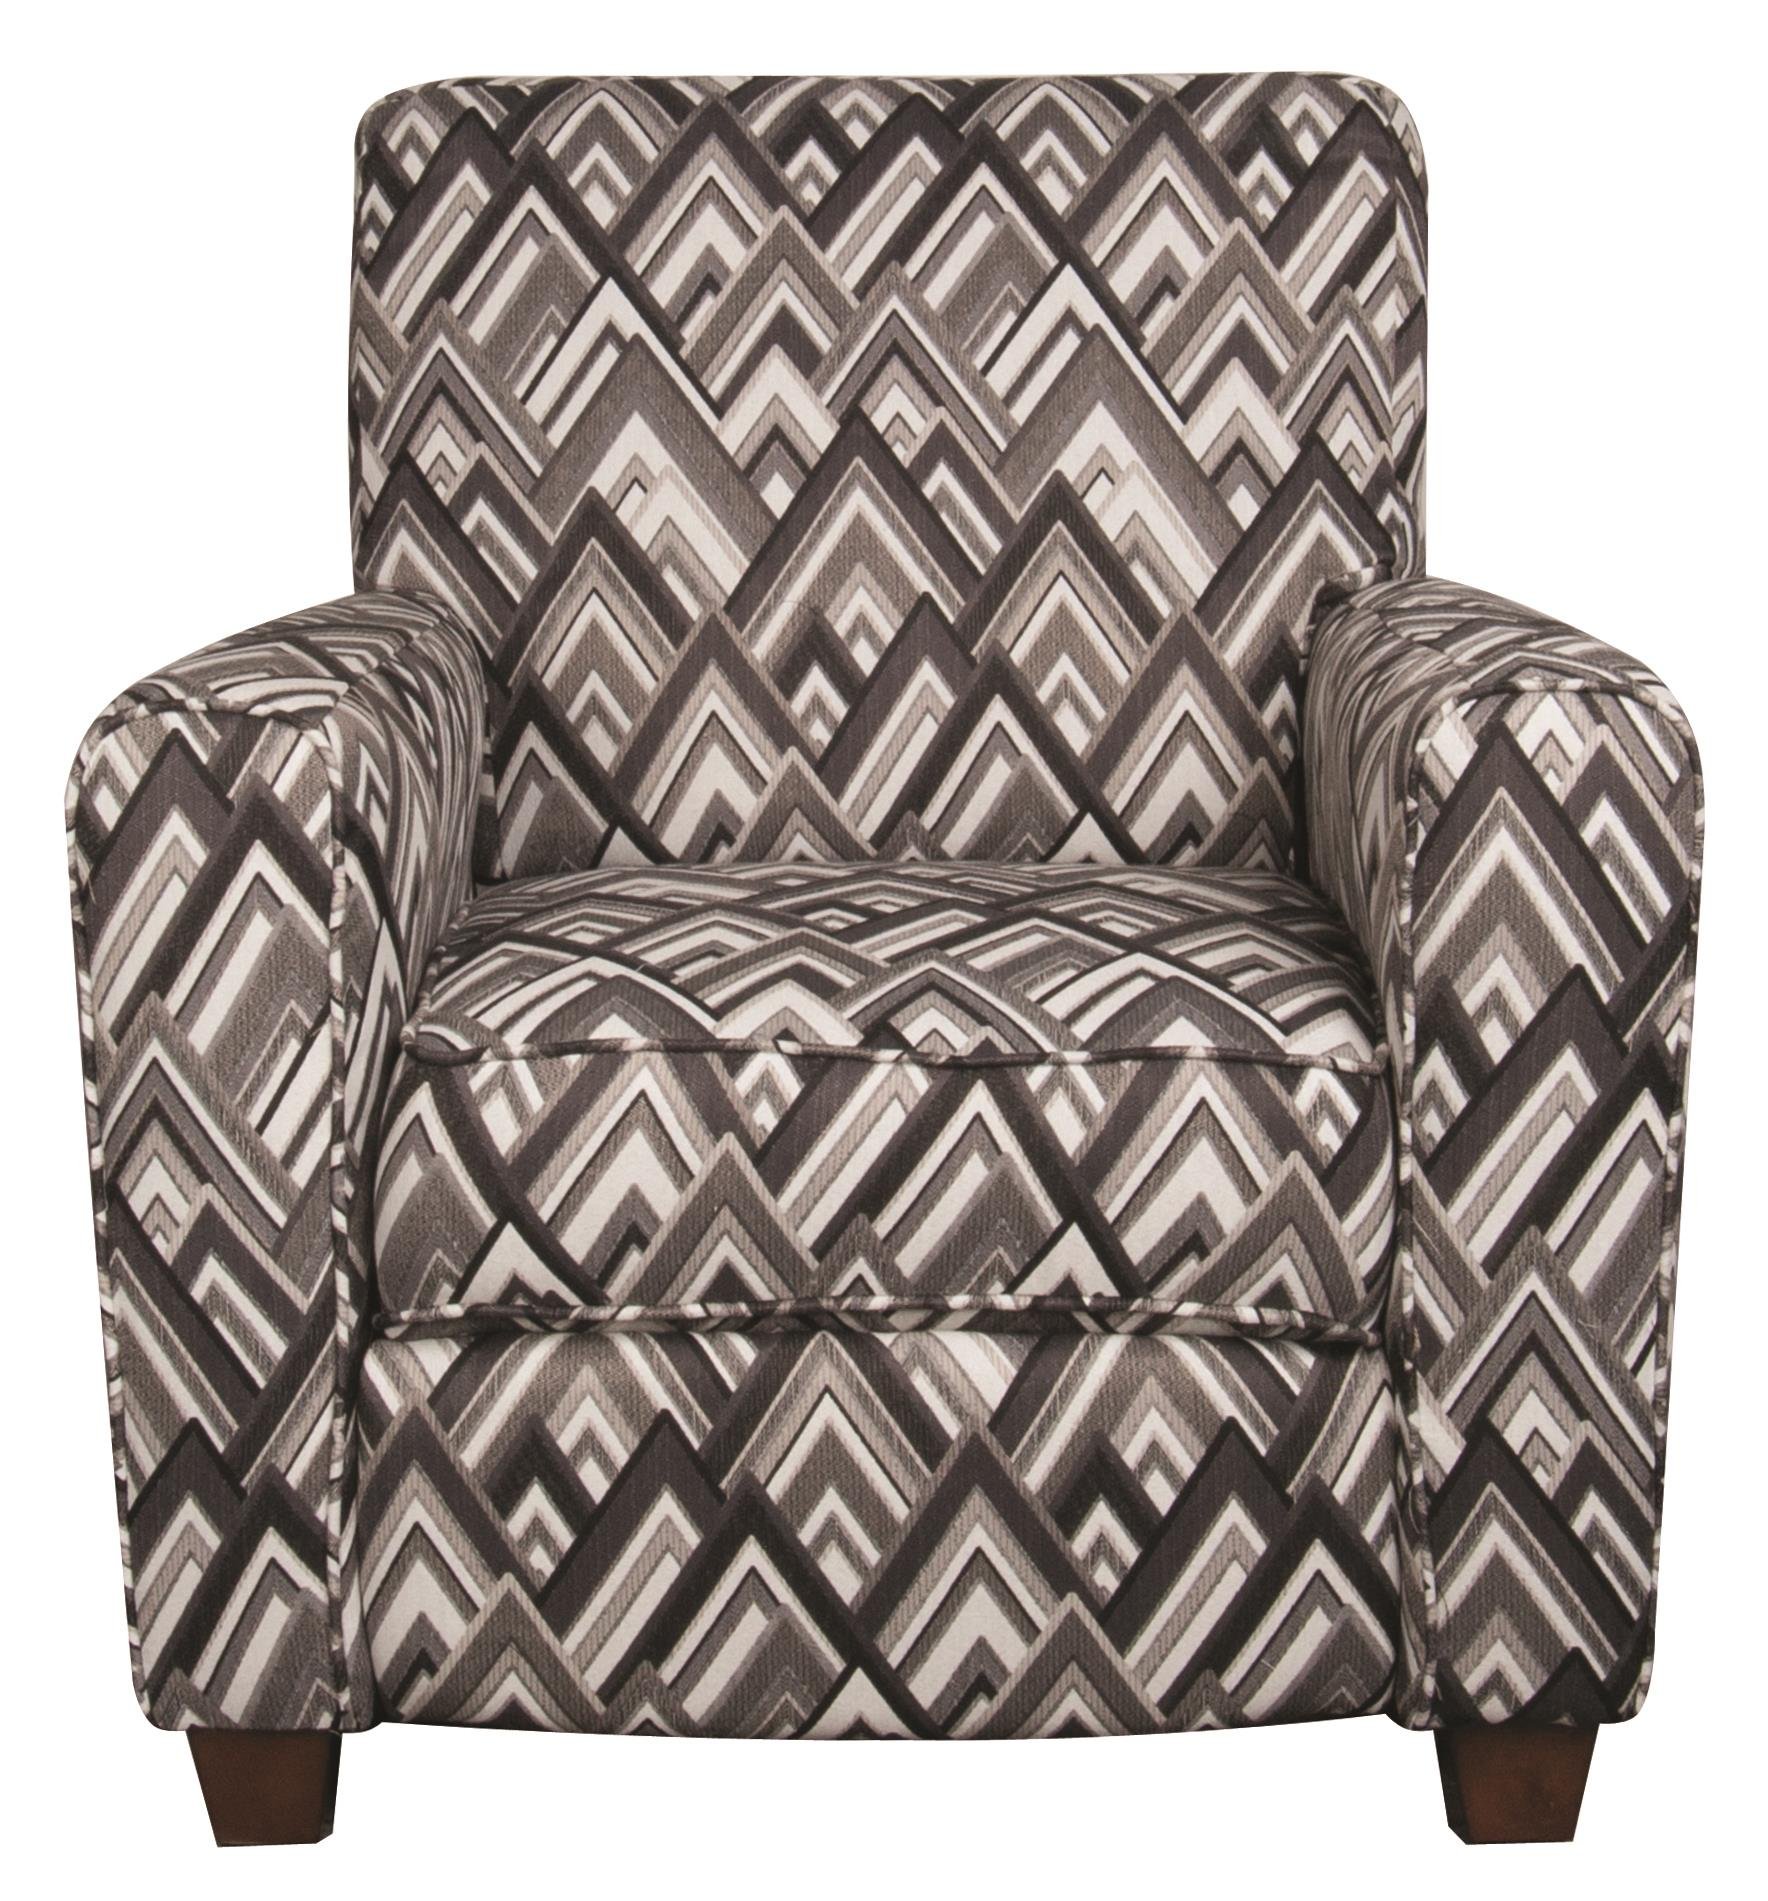 Wilson recliner morris home three way recliners Morris home furniture hours